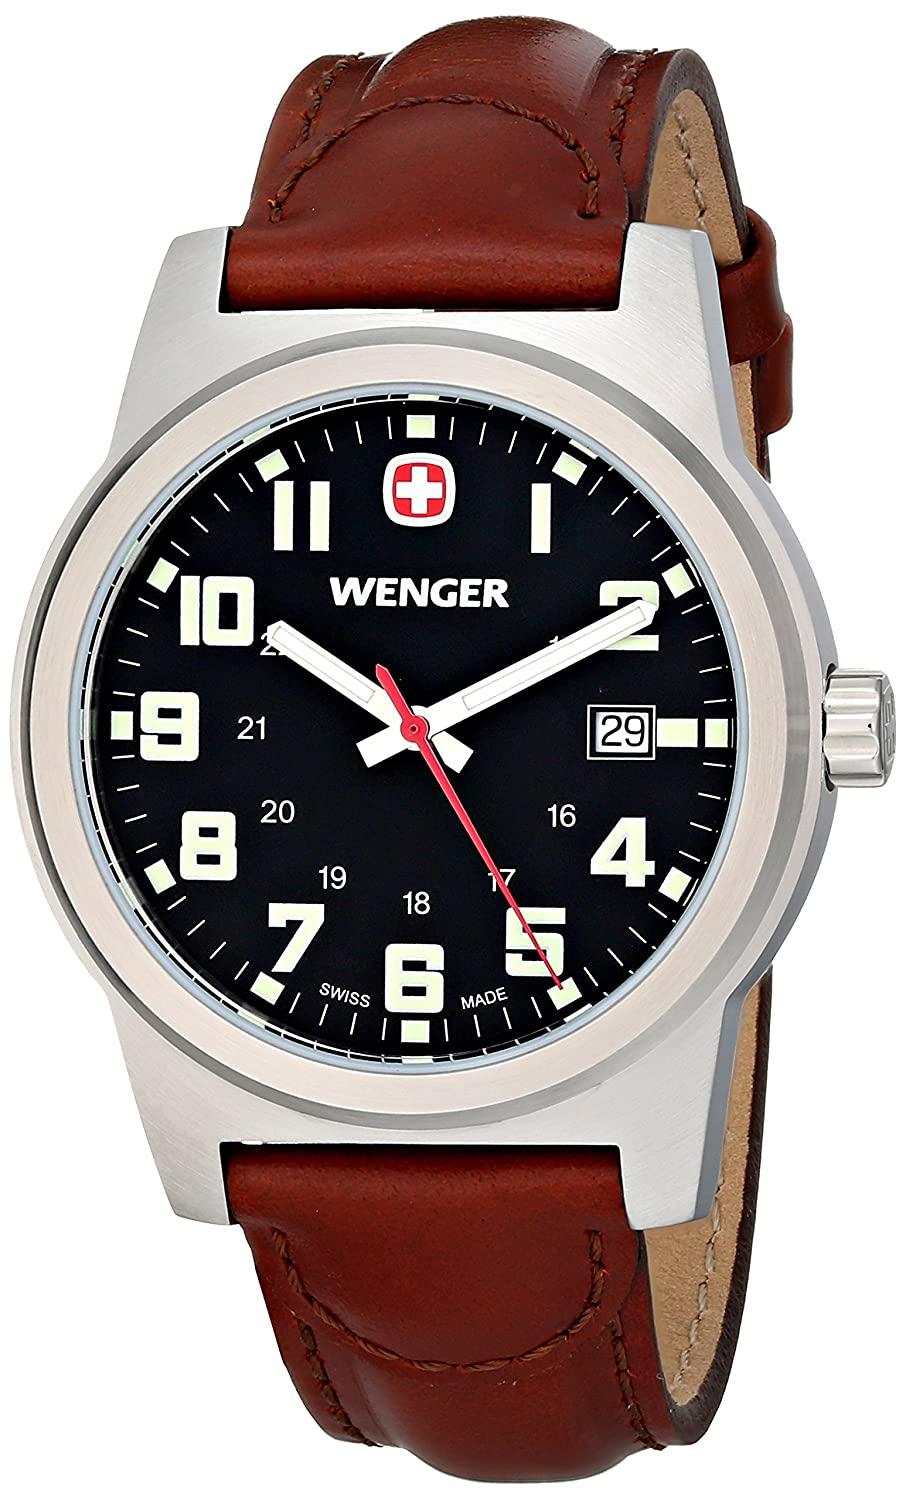 Wenger Men's 72800 Analog Display Swiss Quartz Brown Watch by Wenger